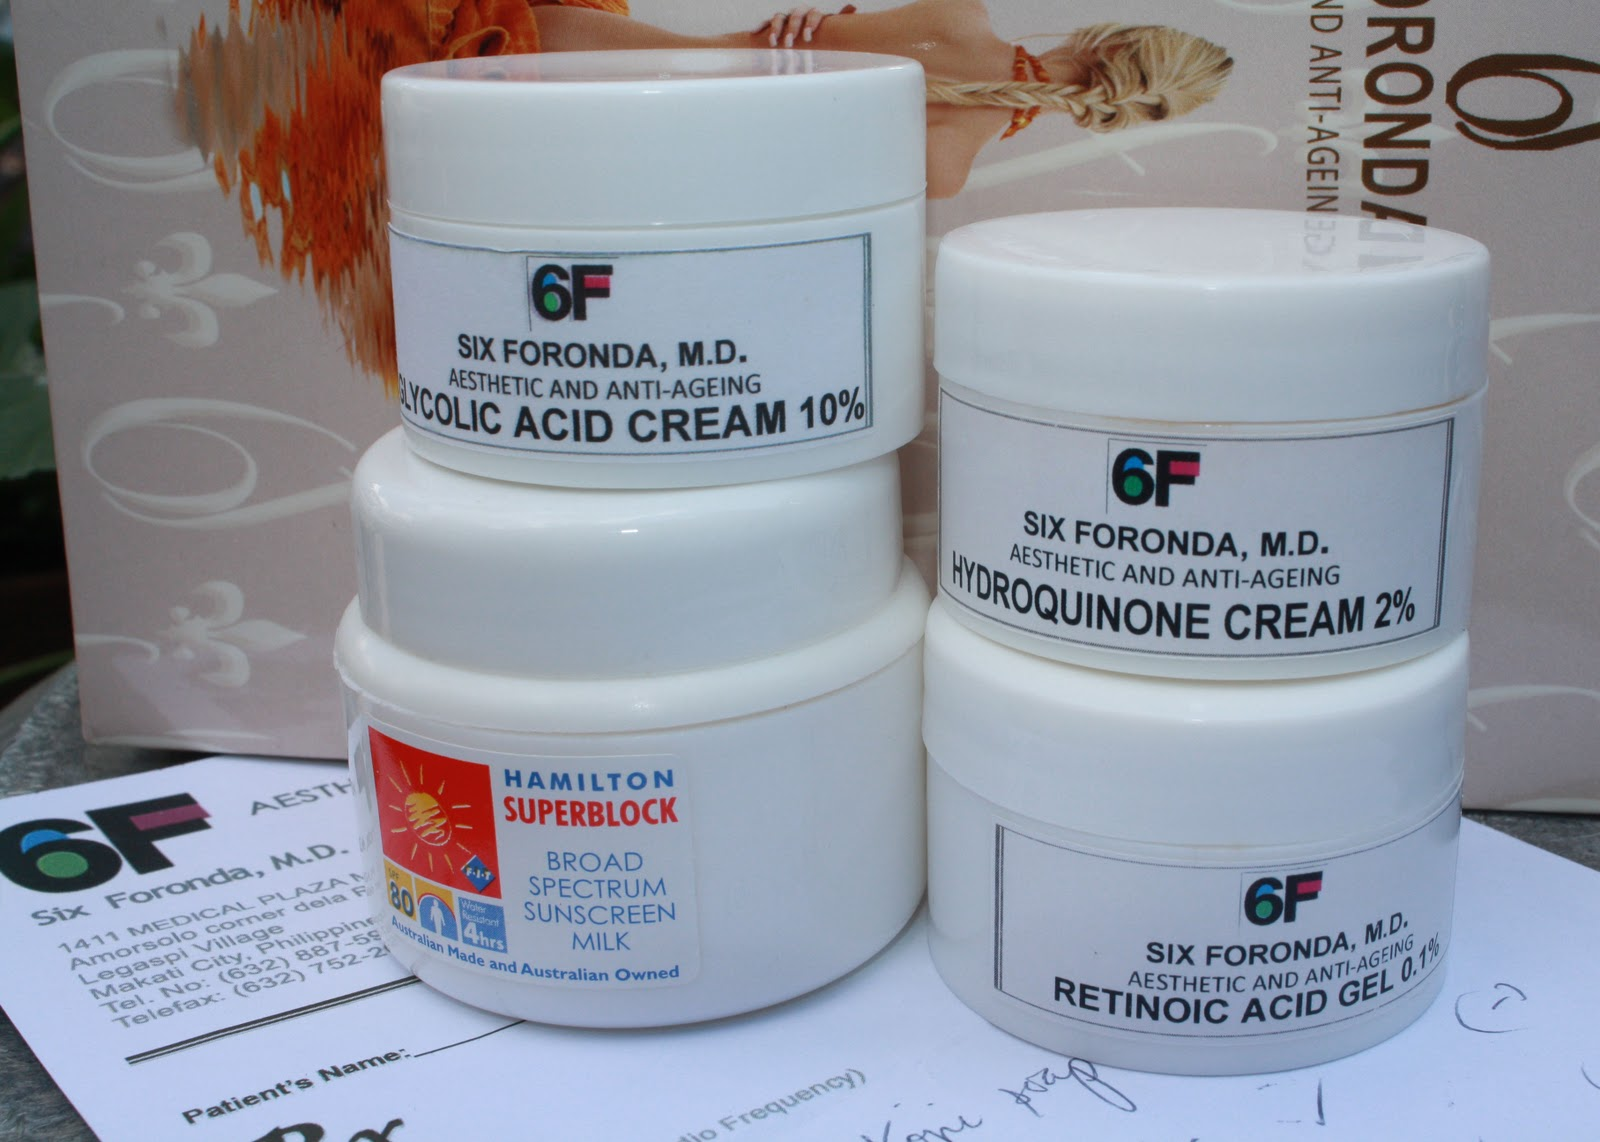 Cheaper Obagi: Doc Six Foronda's glycolic acid cream 10%, Hydroquinone  cream 2%, Retinoic acid 0.1% (forgot to take a pic of the glowing solution;  ...